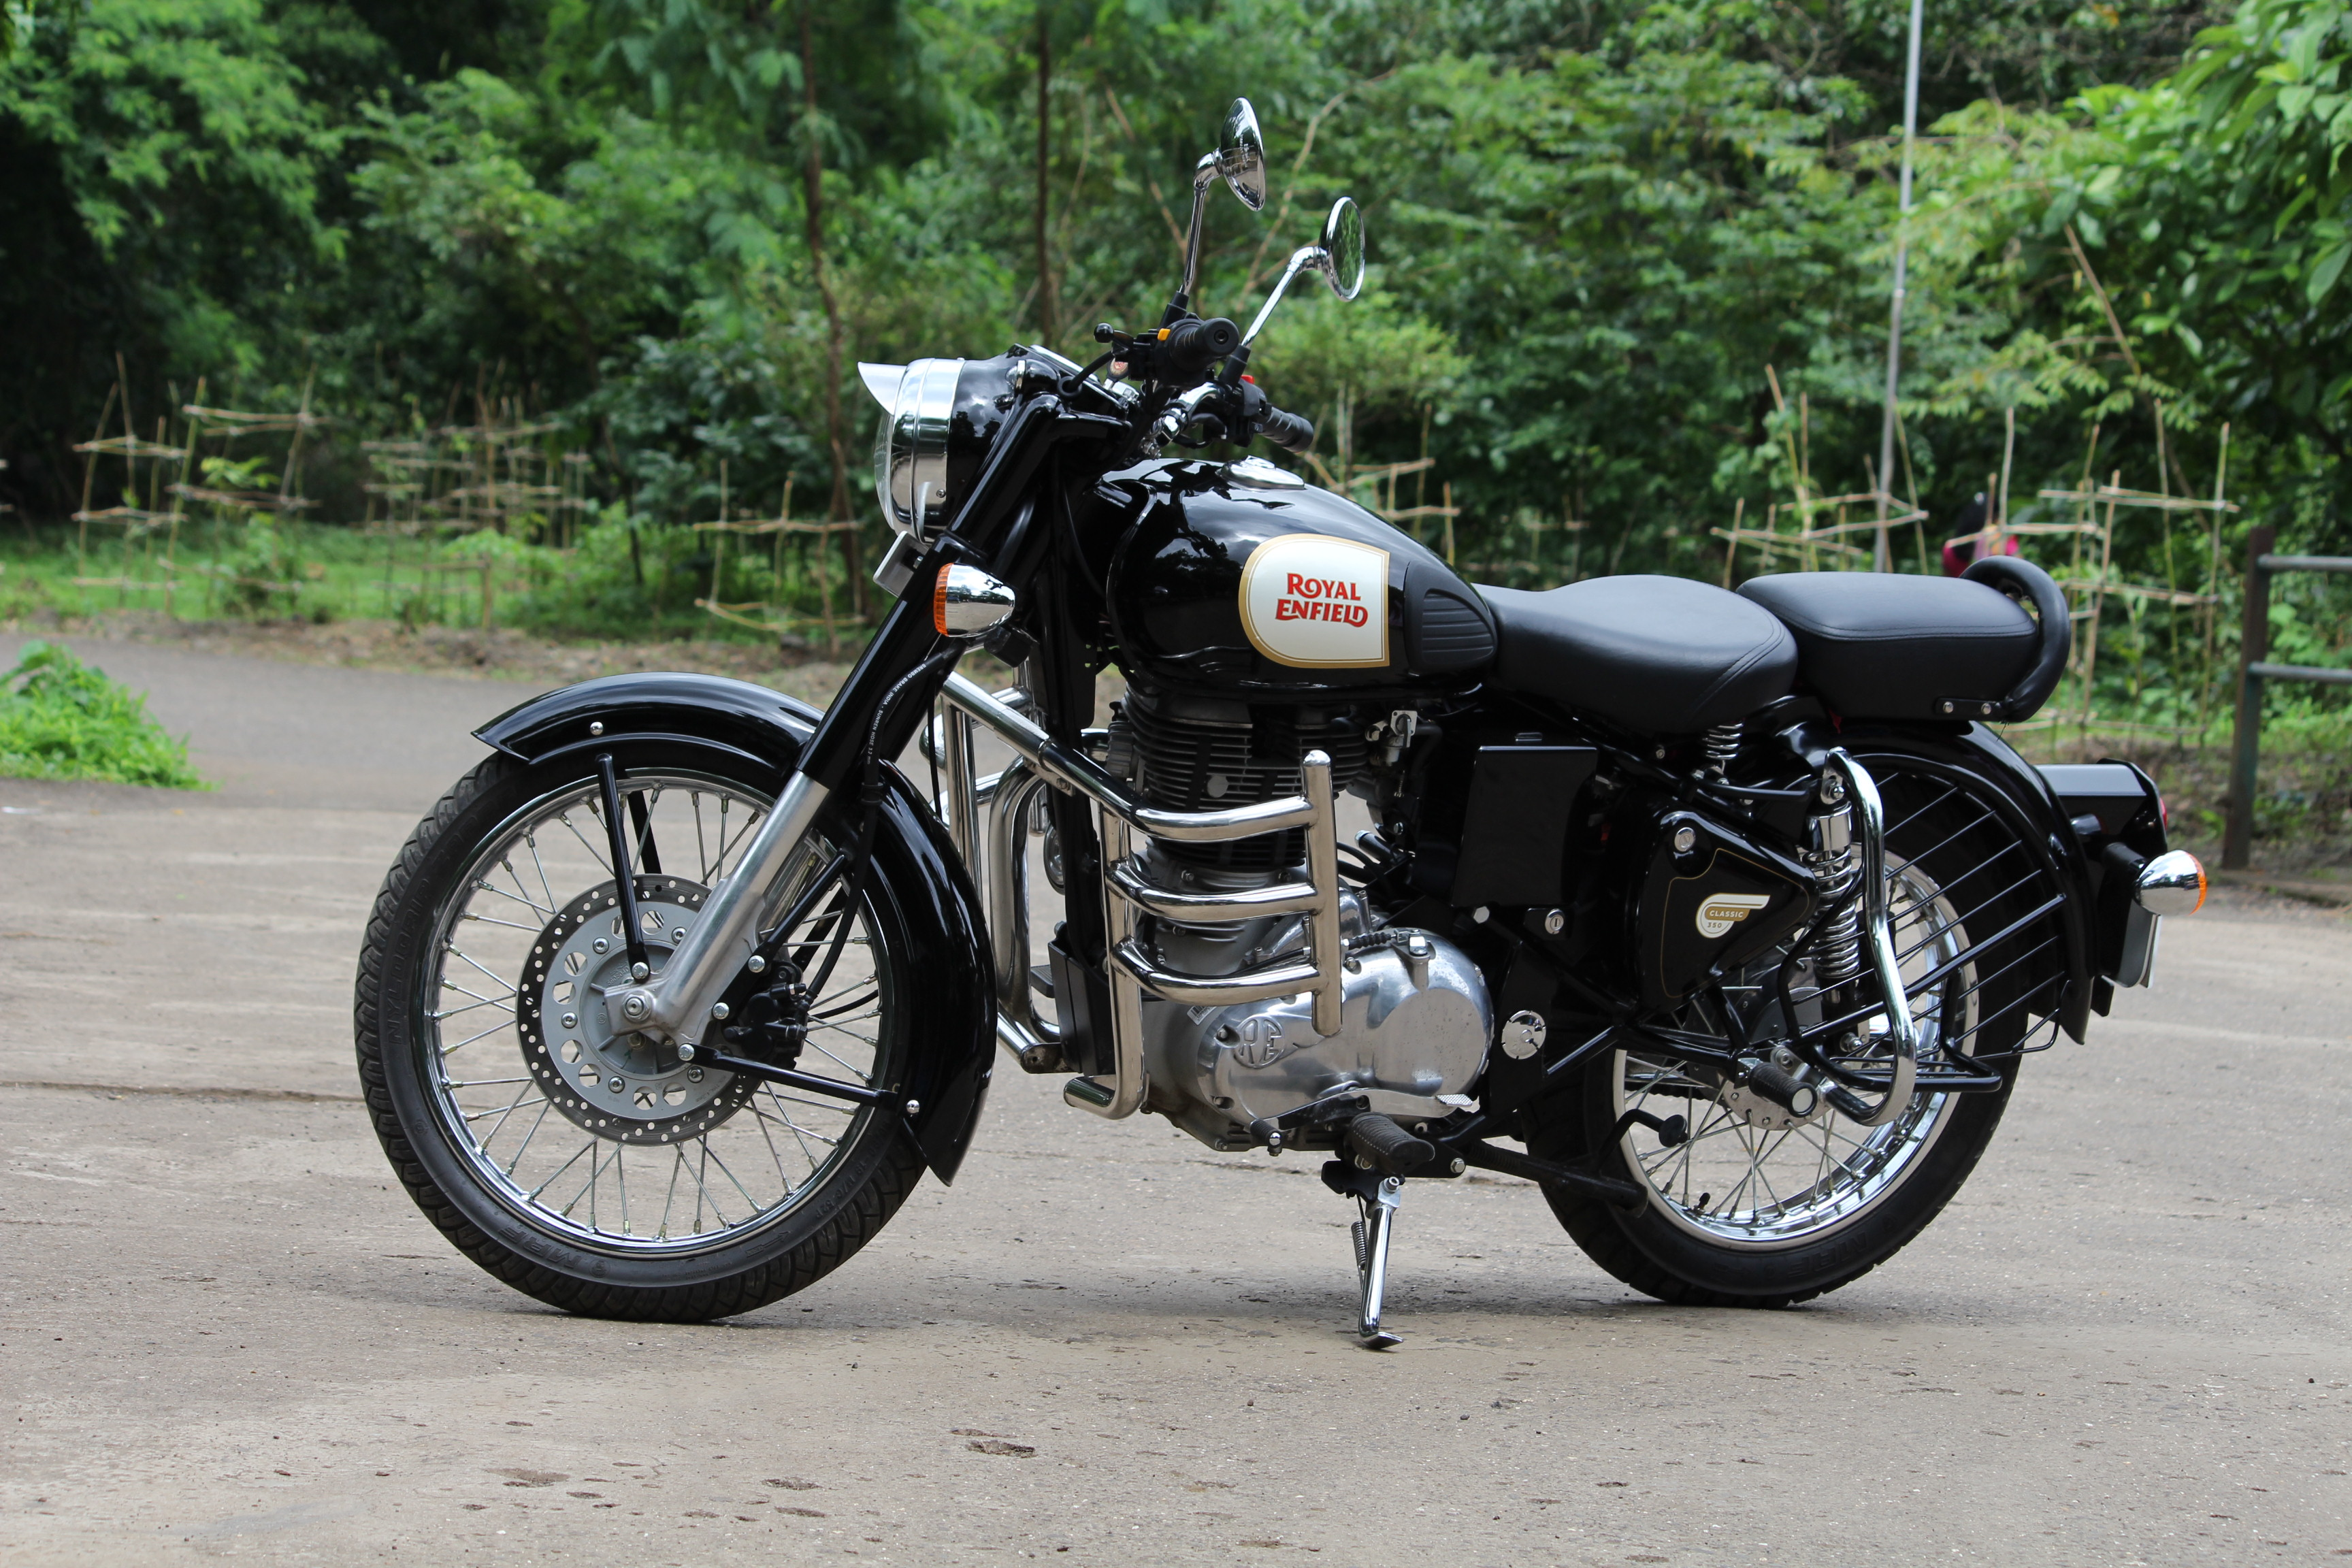 13 royal enfield classic silver wallpapers on wallpapersafari royal enfield classic silver wallpapers